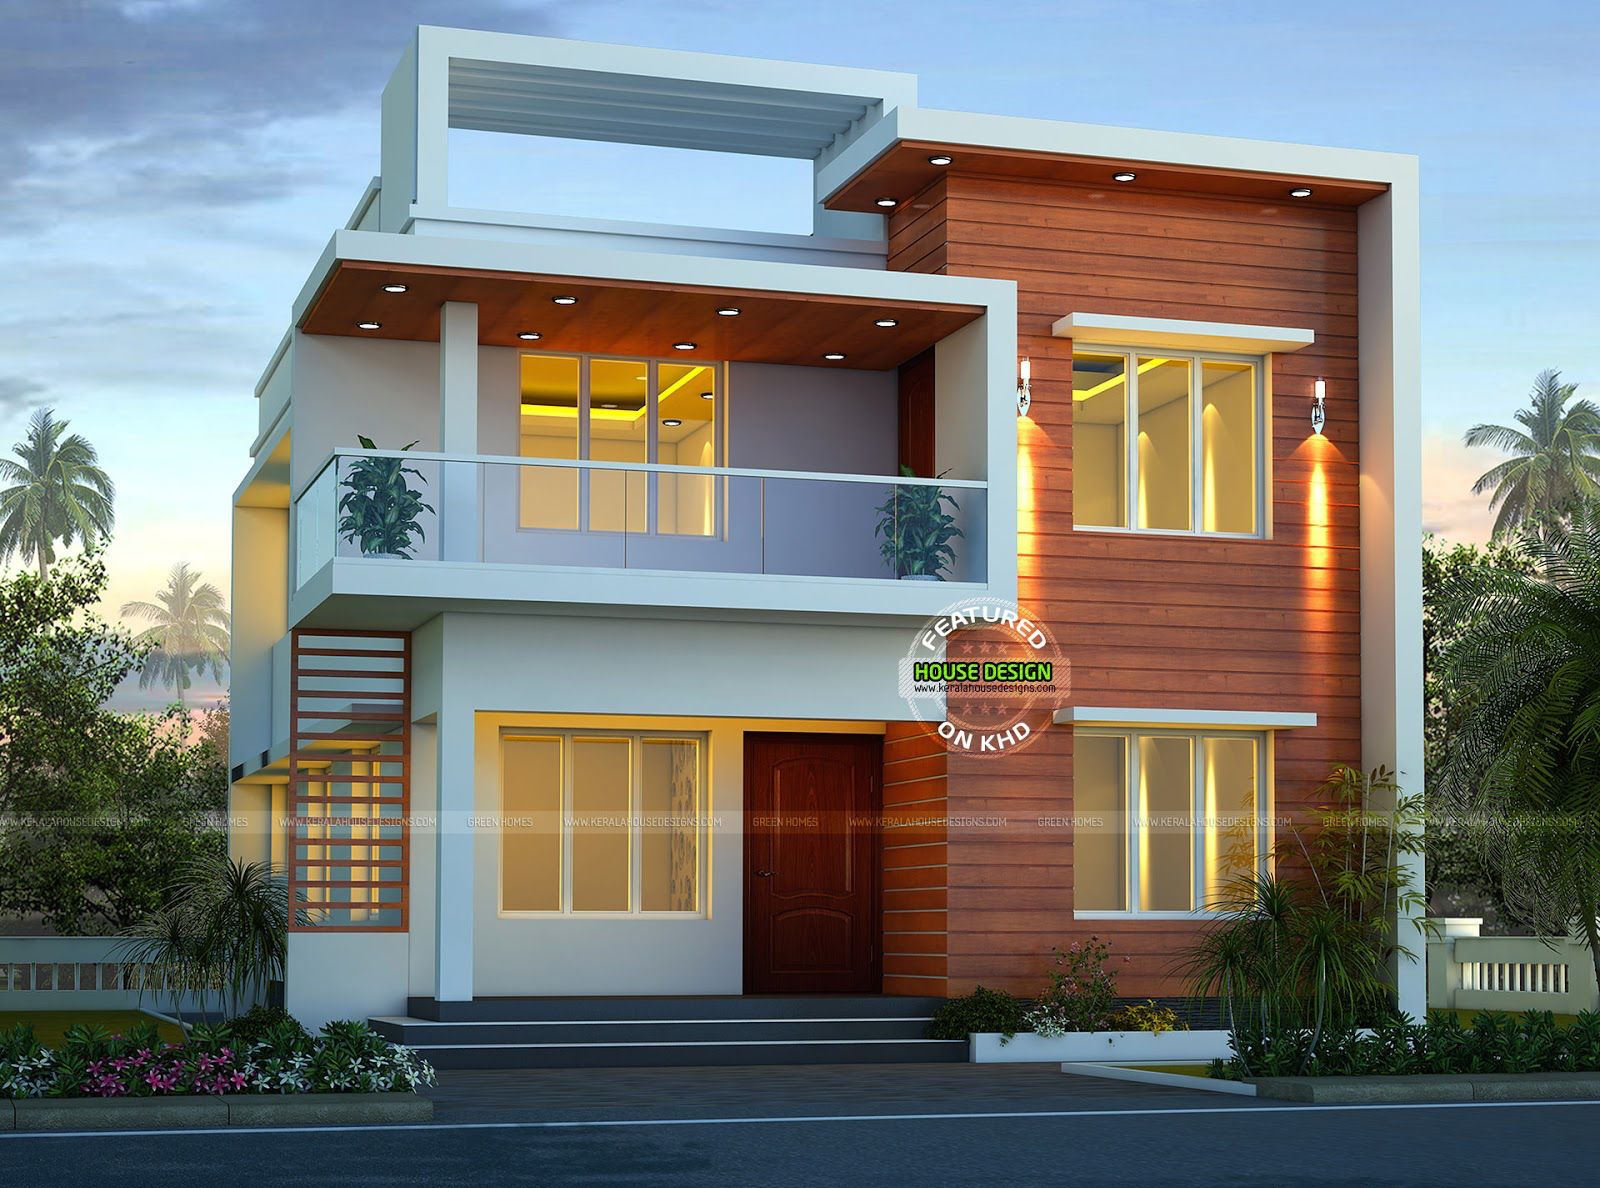 Modern Double Storey Houses This Small Modern Double Storey Home Has Total Area Of